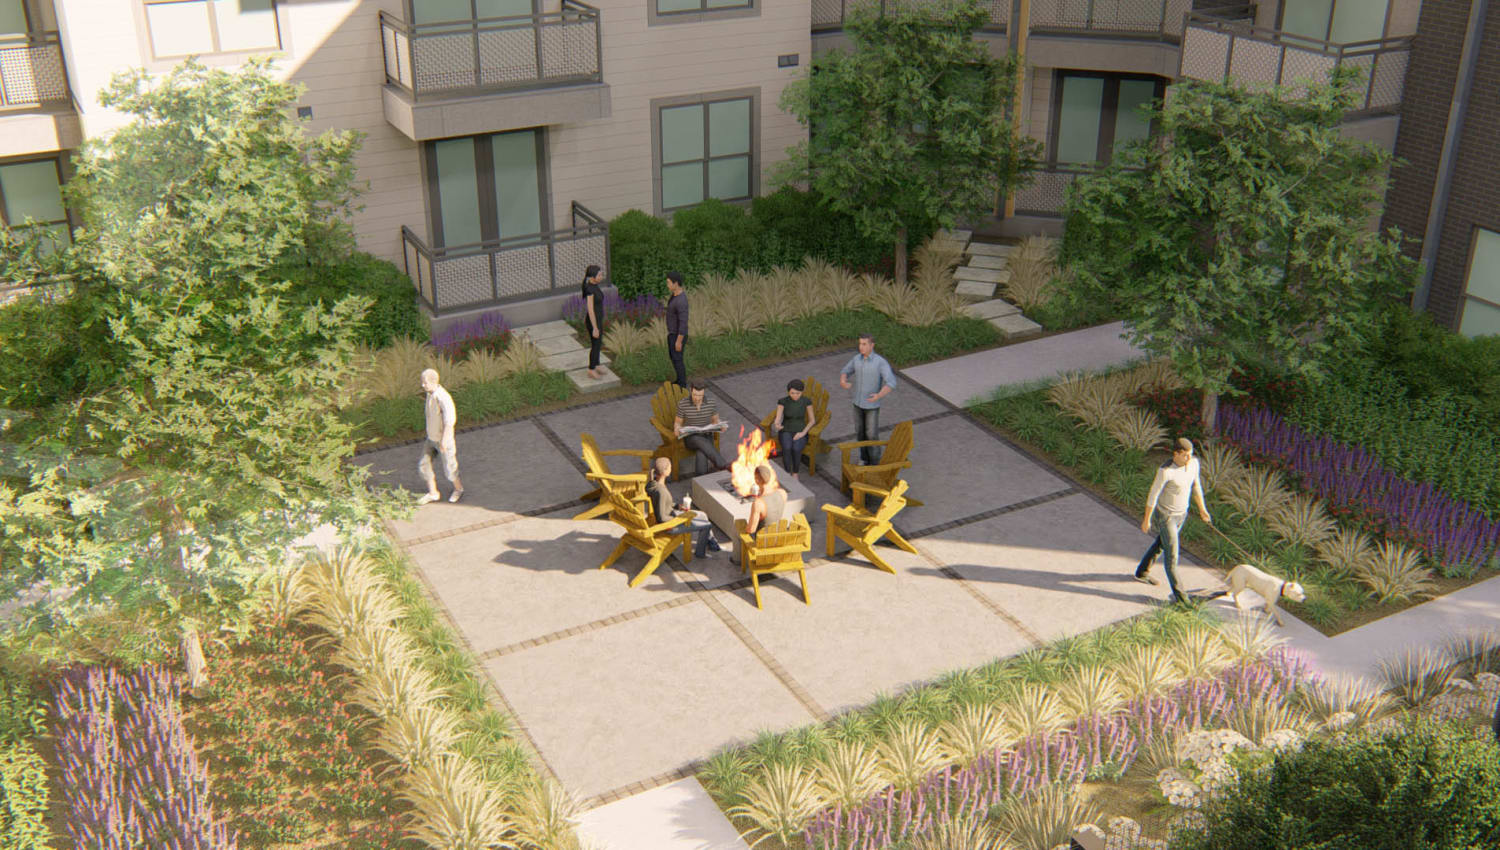 Rendering of the fire pit area surrounded by professionally maintained landscaping at Olympus on Broadway in Carrollton, Texas